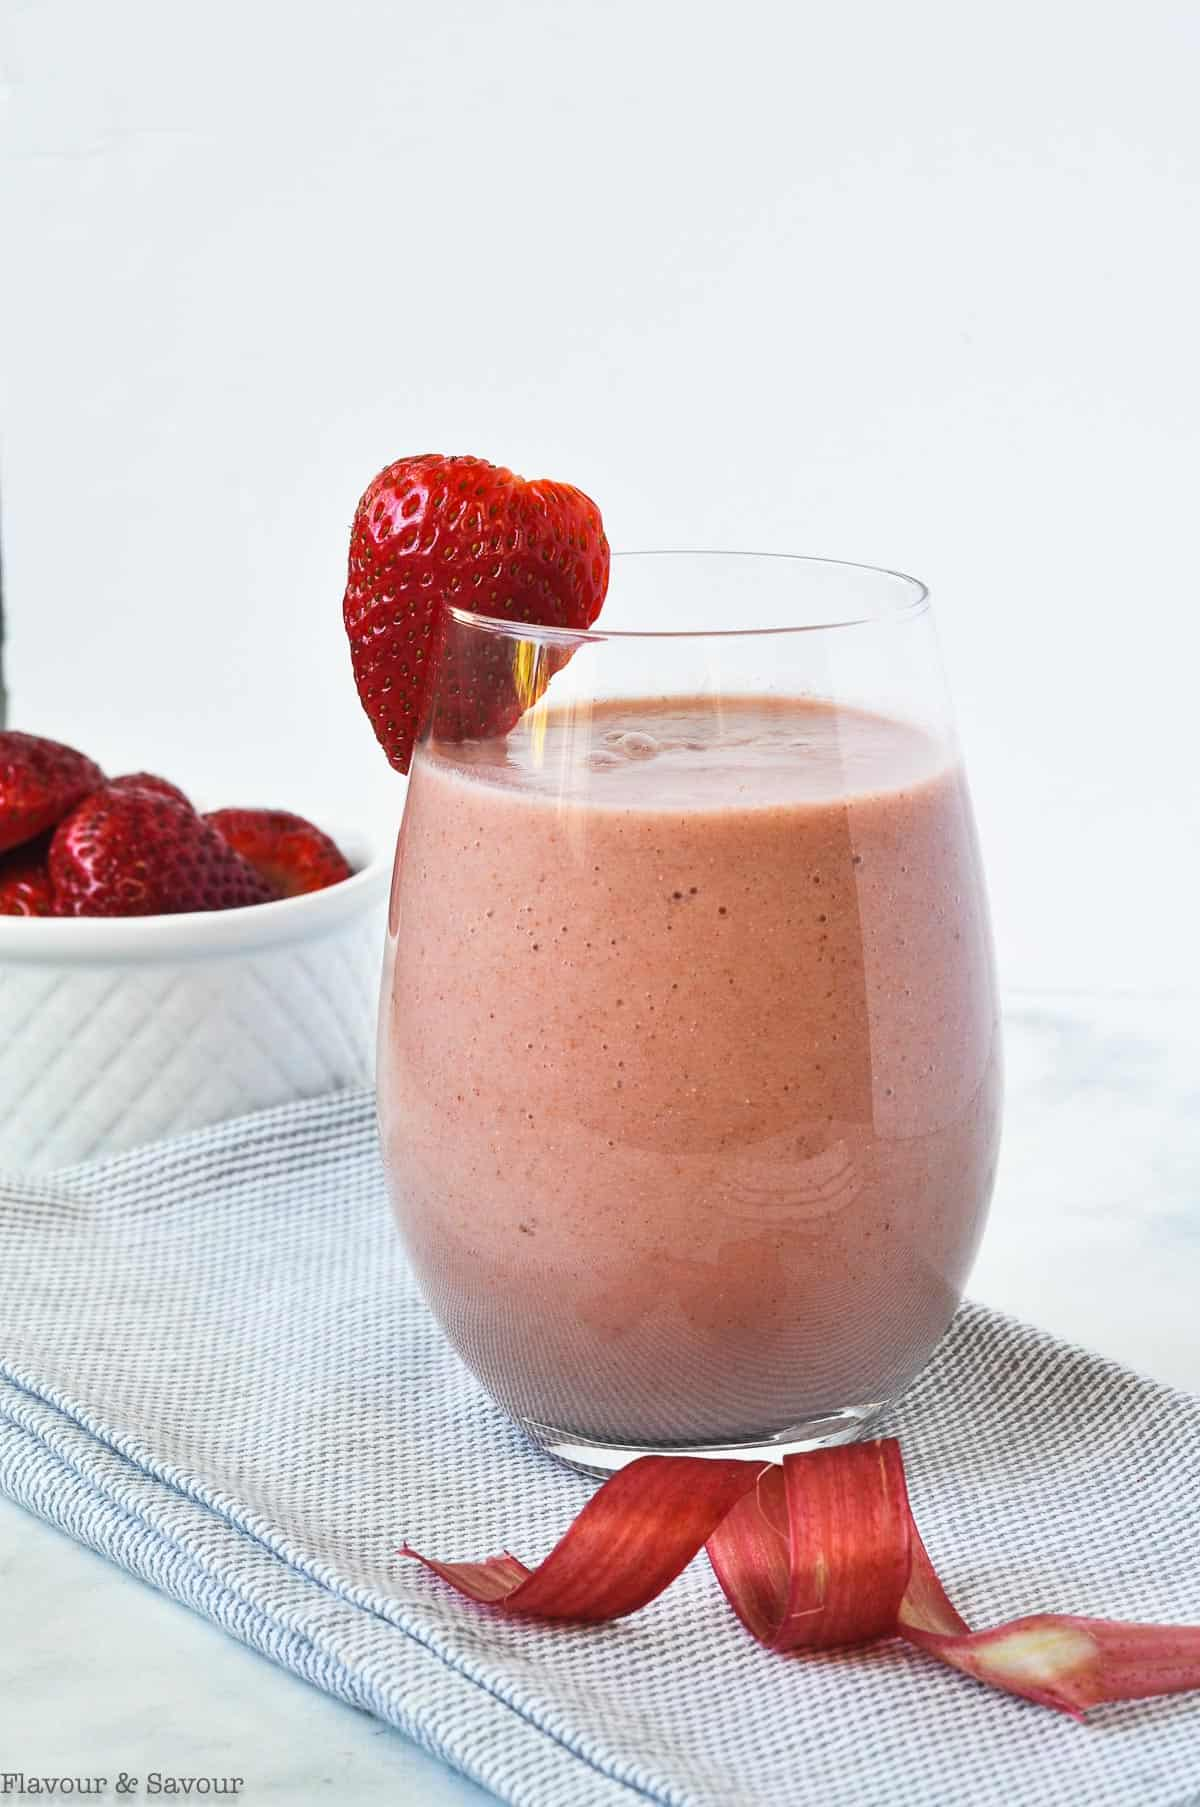 Strawberry Rhubarb Smoothie with strawberries in the background